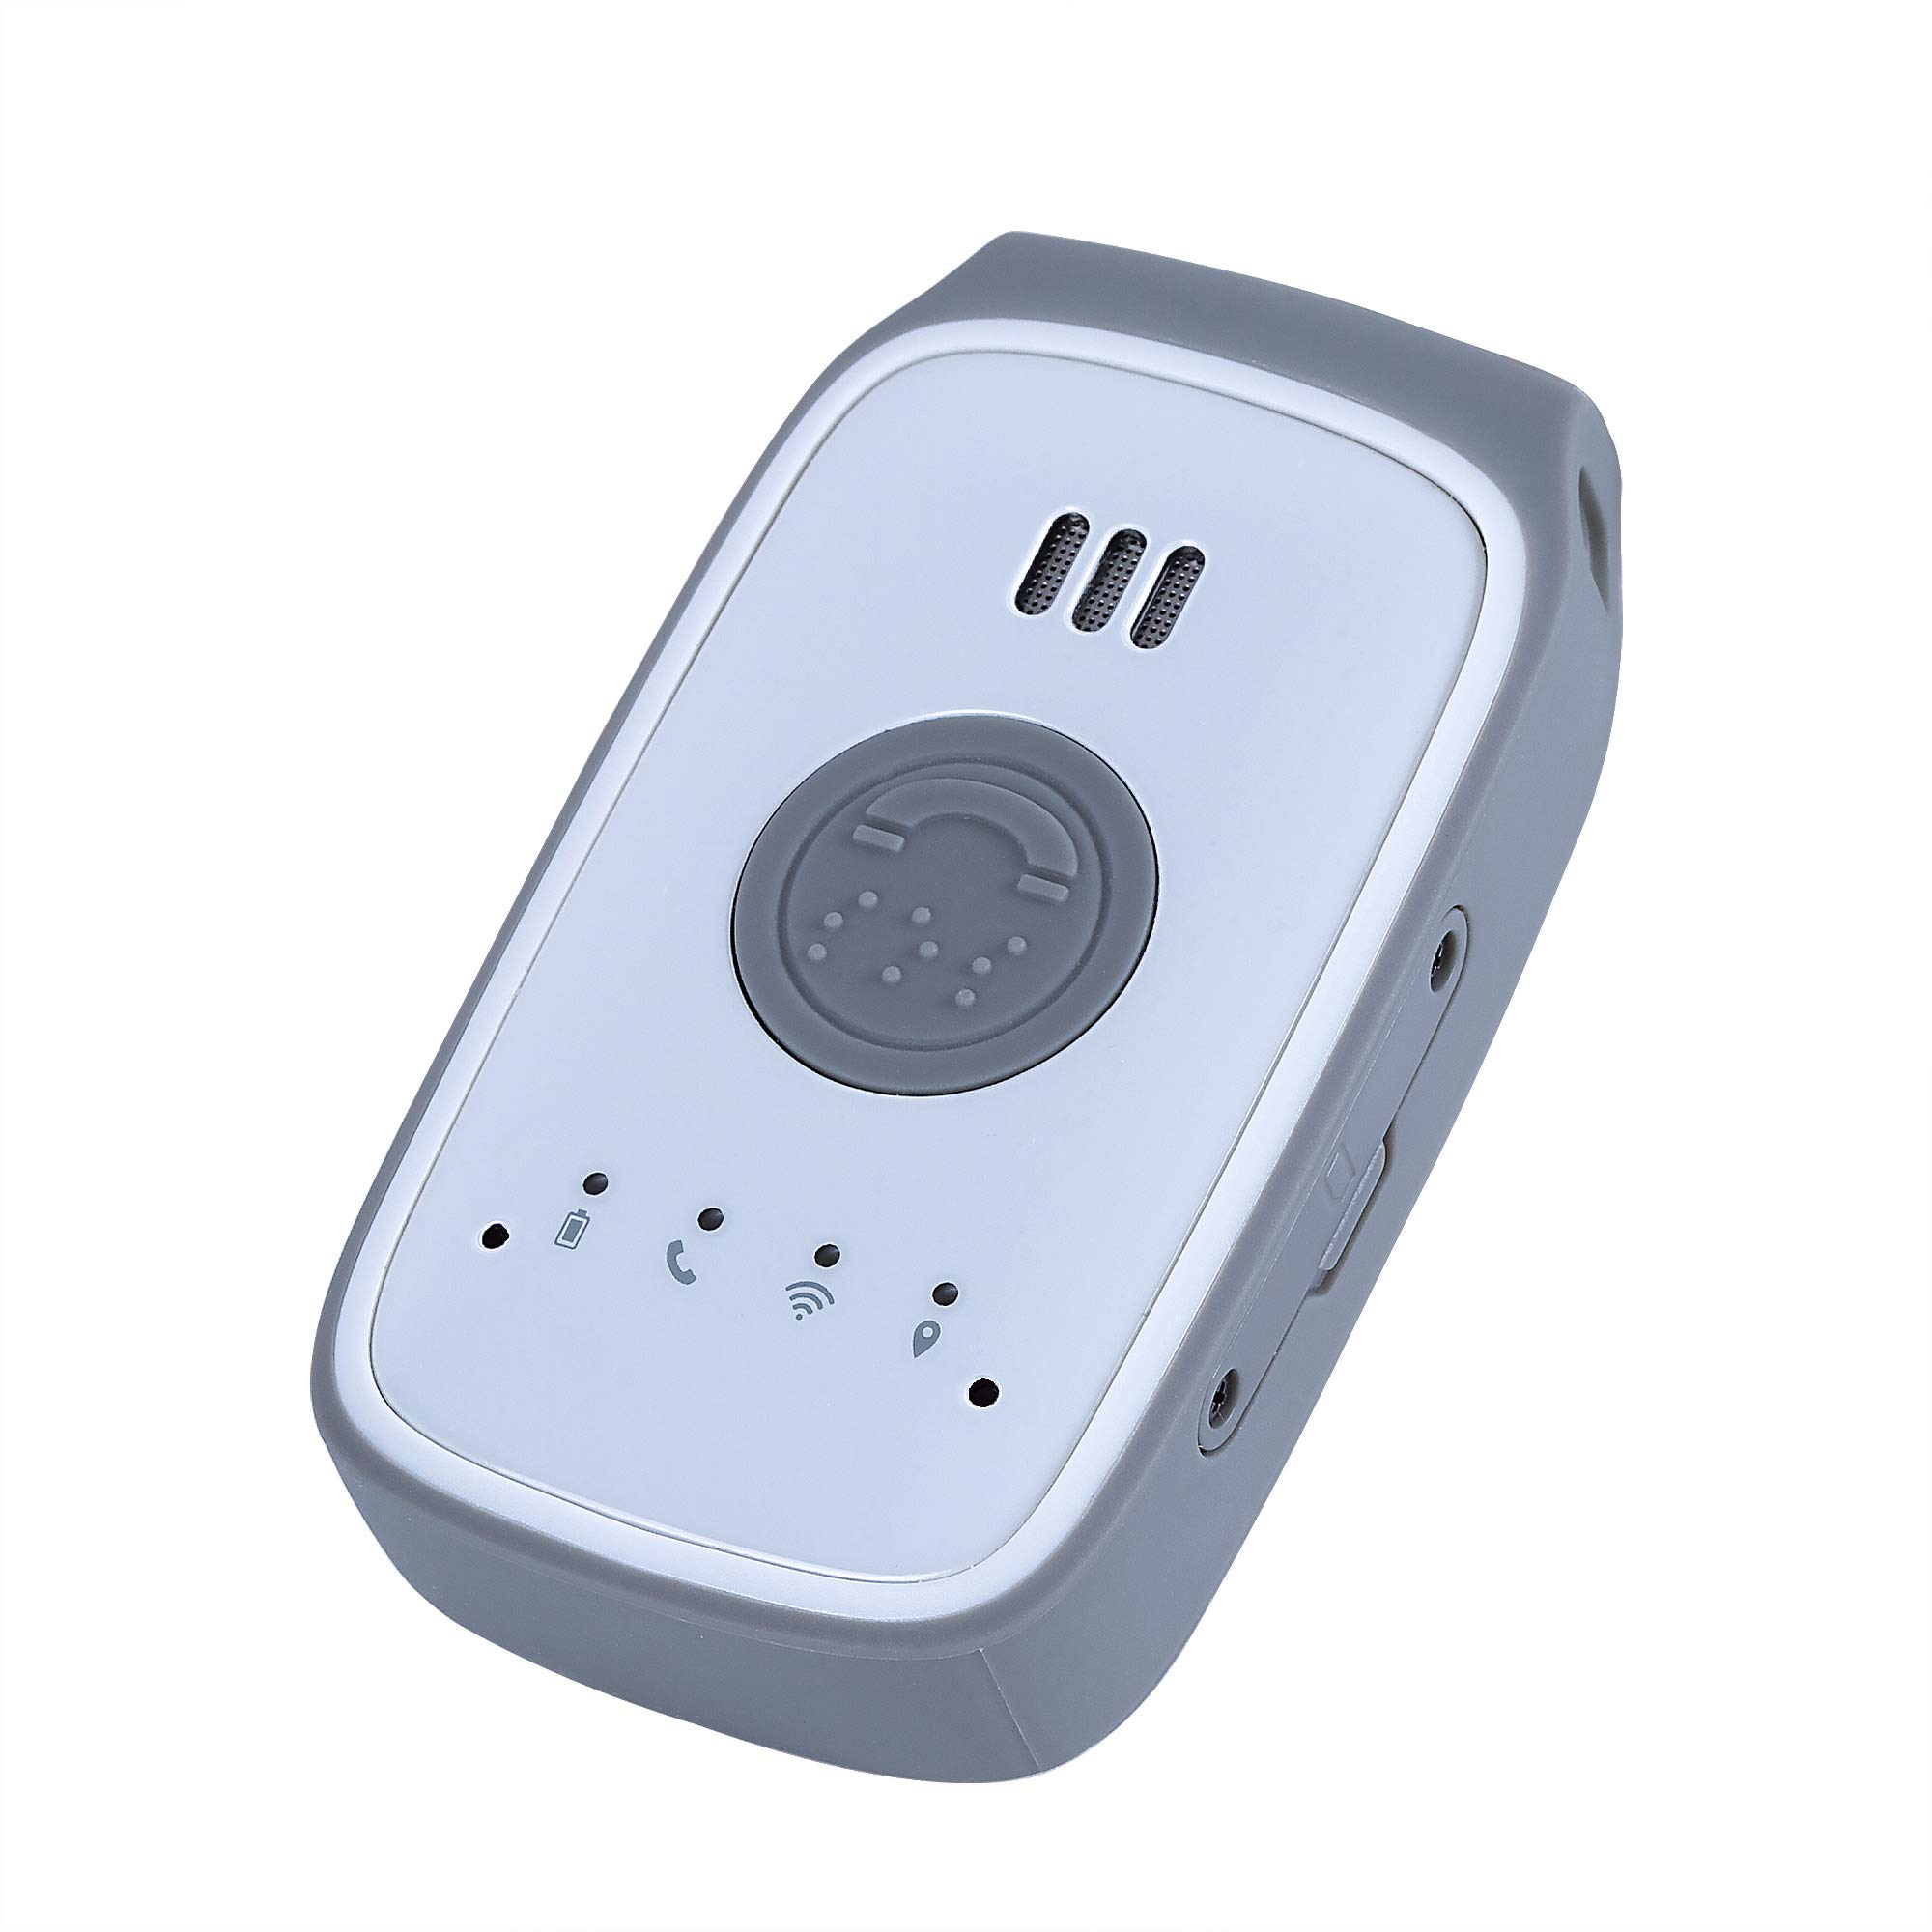 LifeStation Mobile GPS Medical Alert - All-in-one-System for Seniors On-The-Go. Nationwide GPS and WiFi Coverage. Includes 6 Free Months of 24/7 Emergency Monitoring. by LifeStation (Image #8)